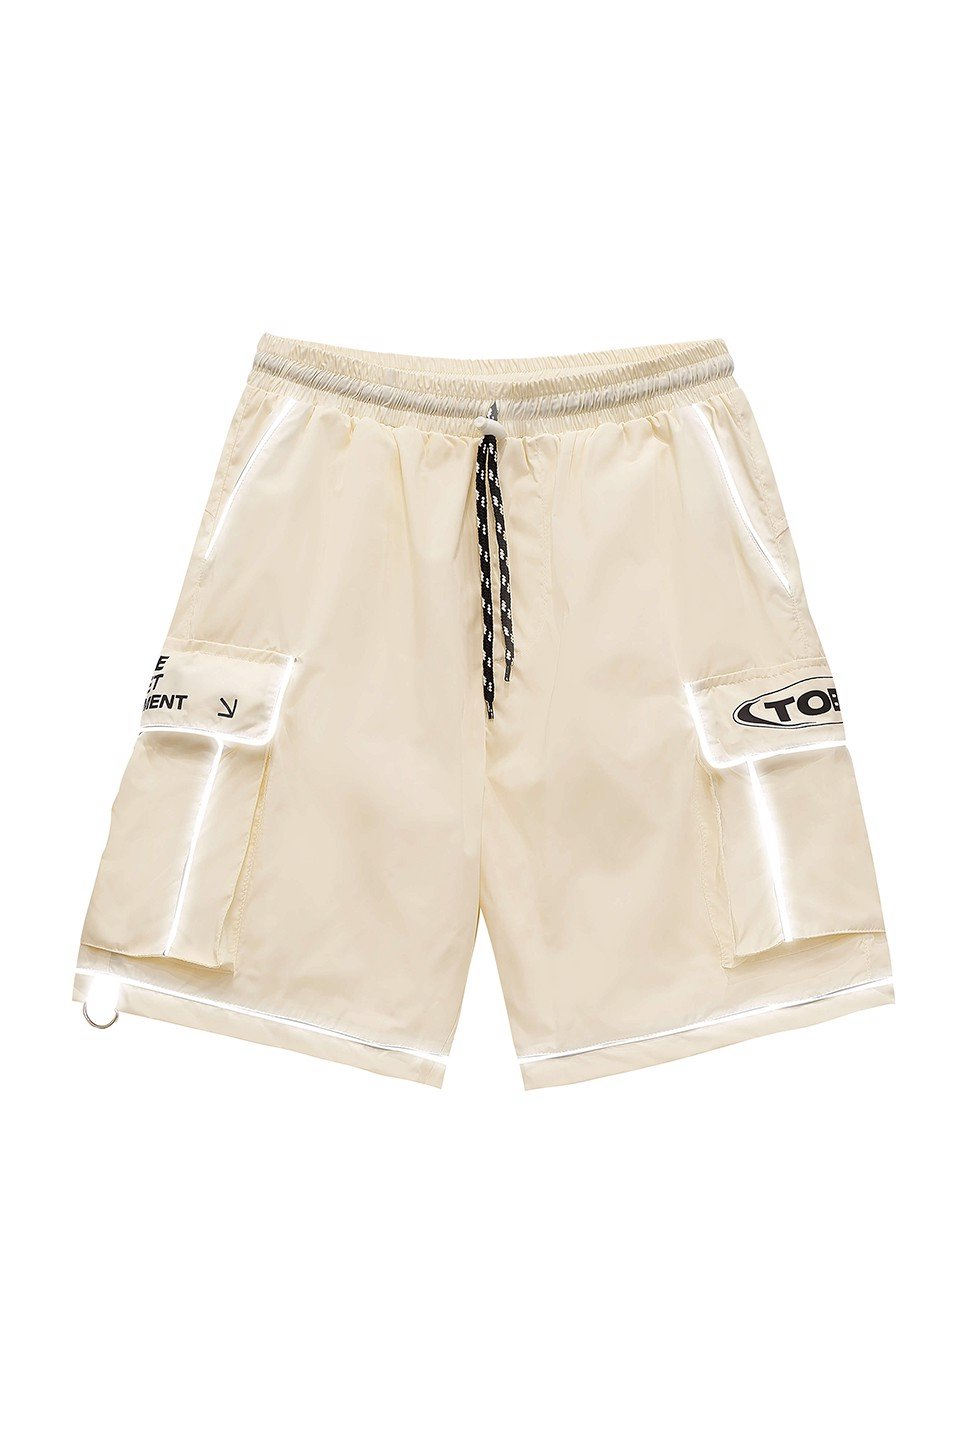 Casual Reflection - Short - White